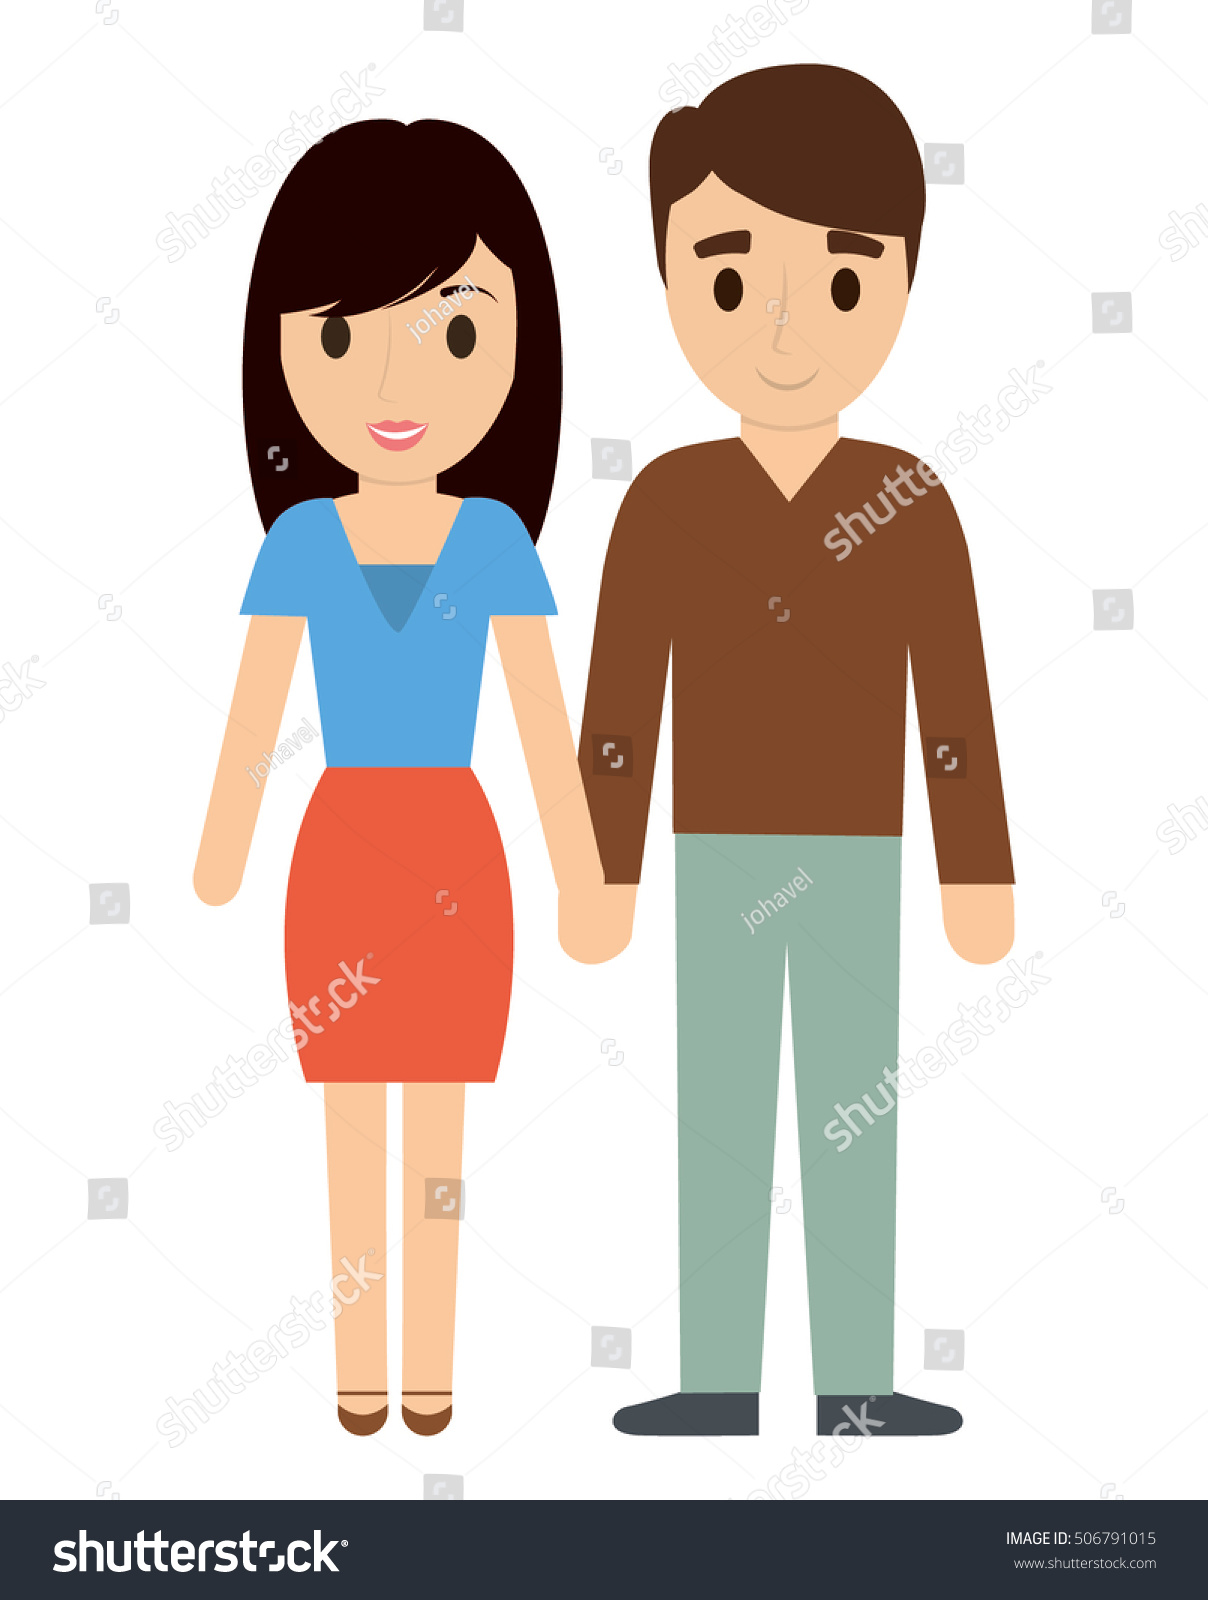 Only mother and father clipart 6 » Clipart Station.